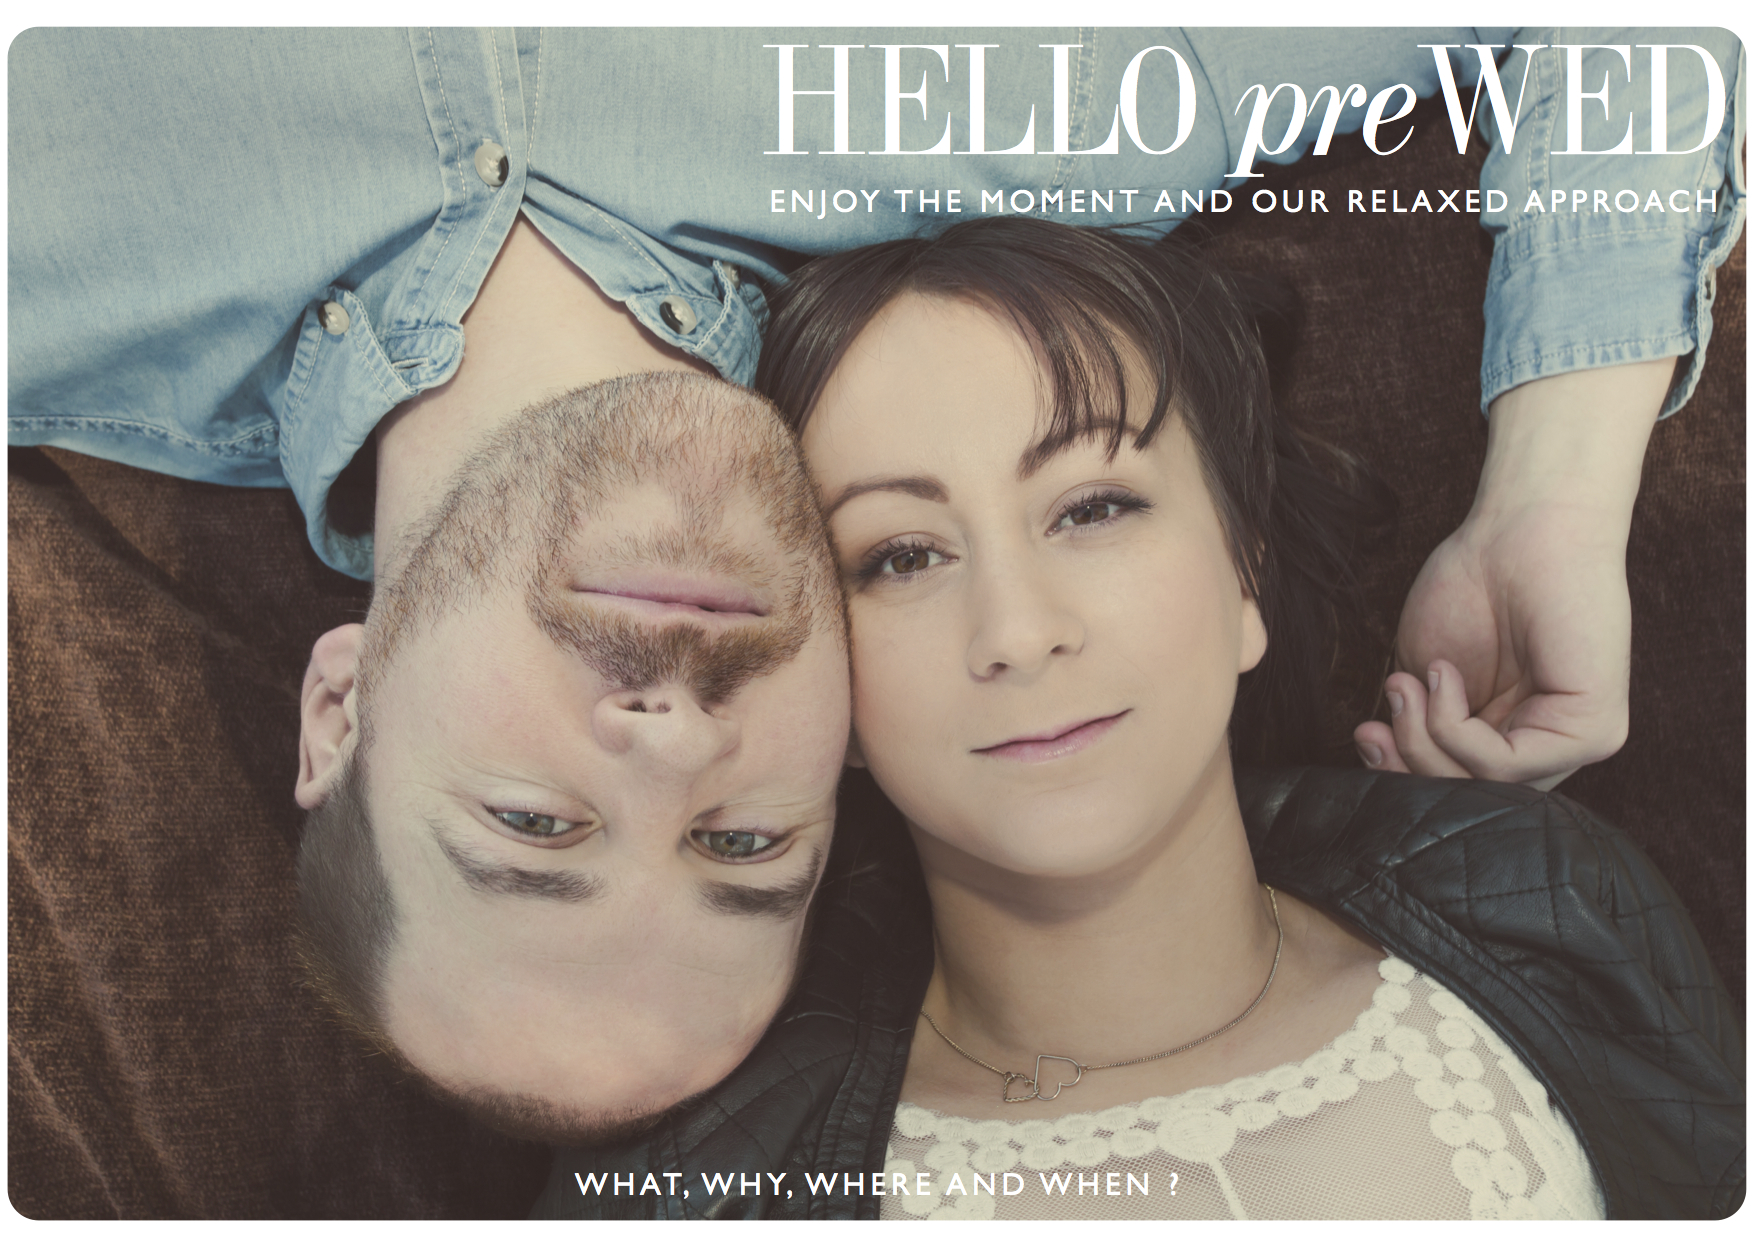 Hello preWED - What, why, where and when? Click the image above for additional information.